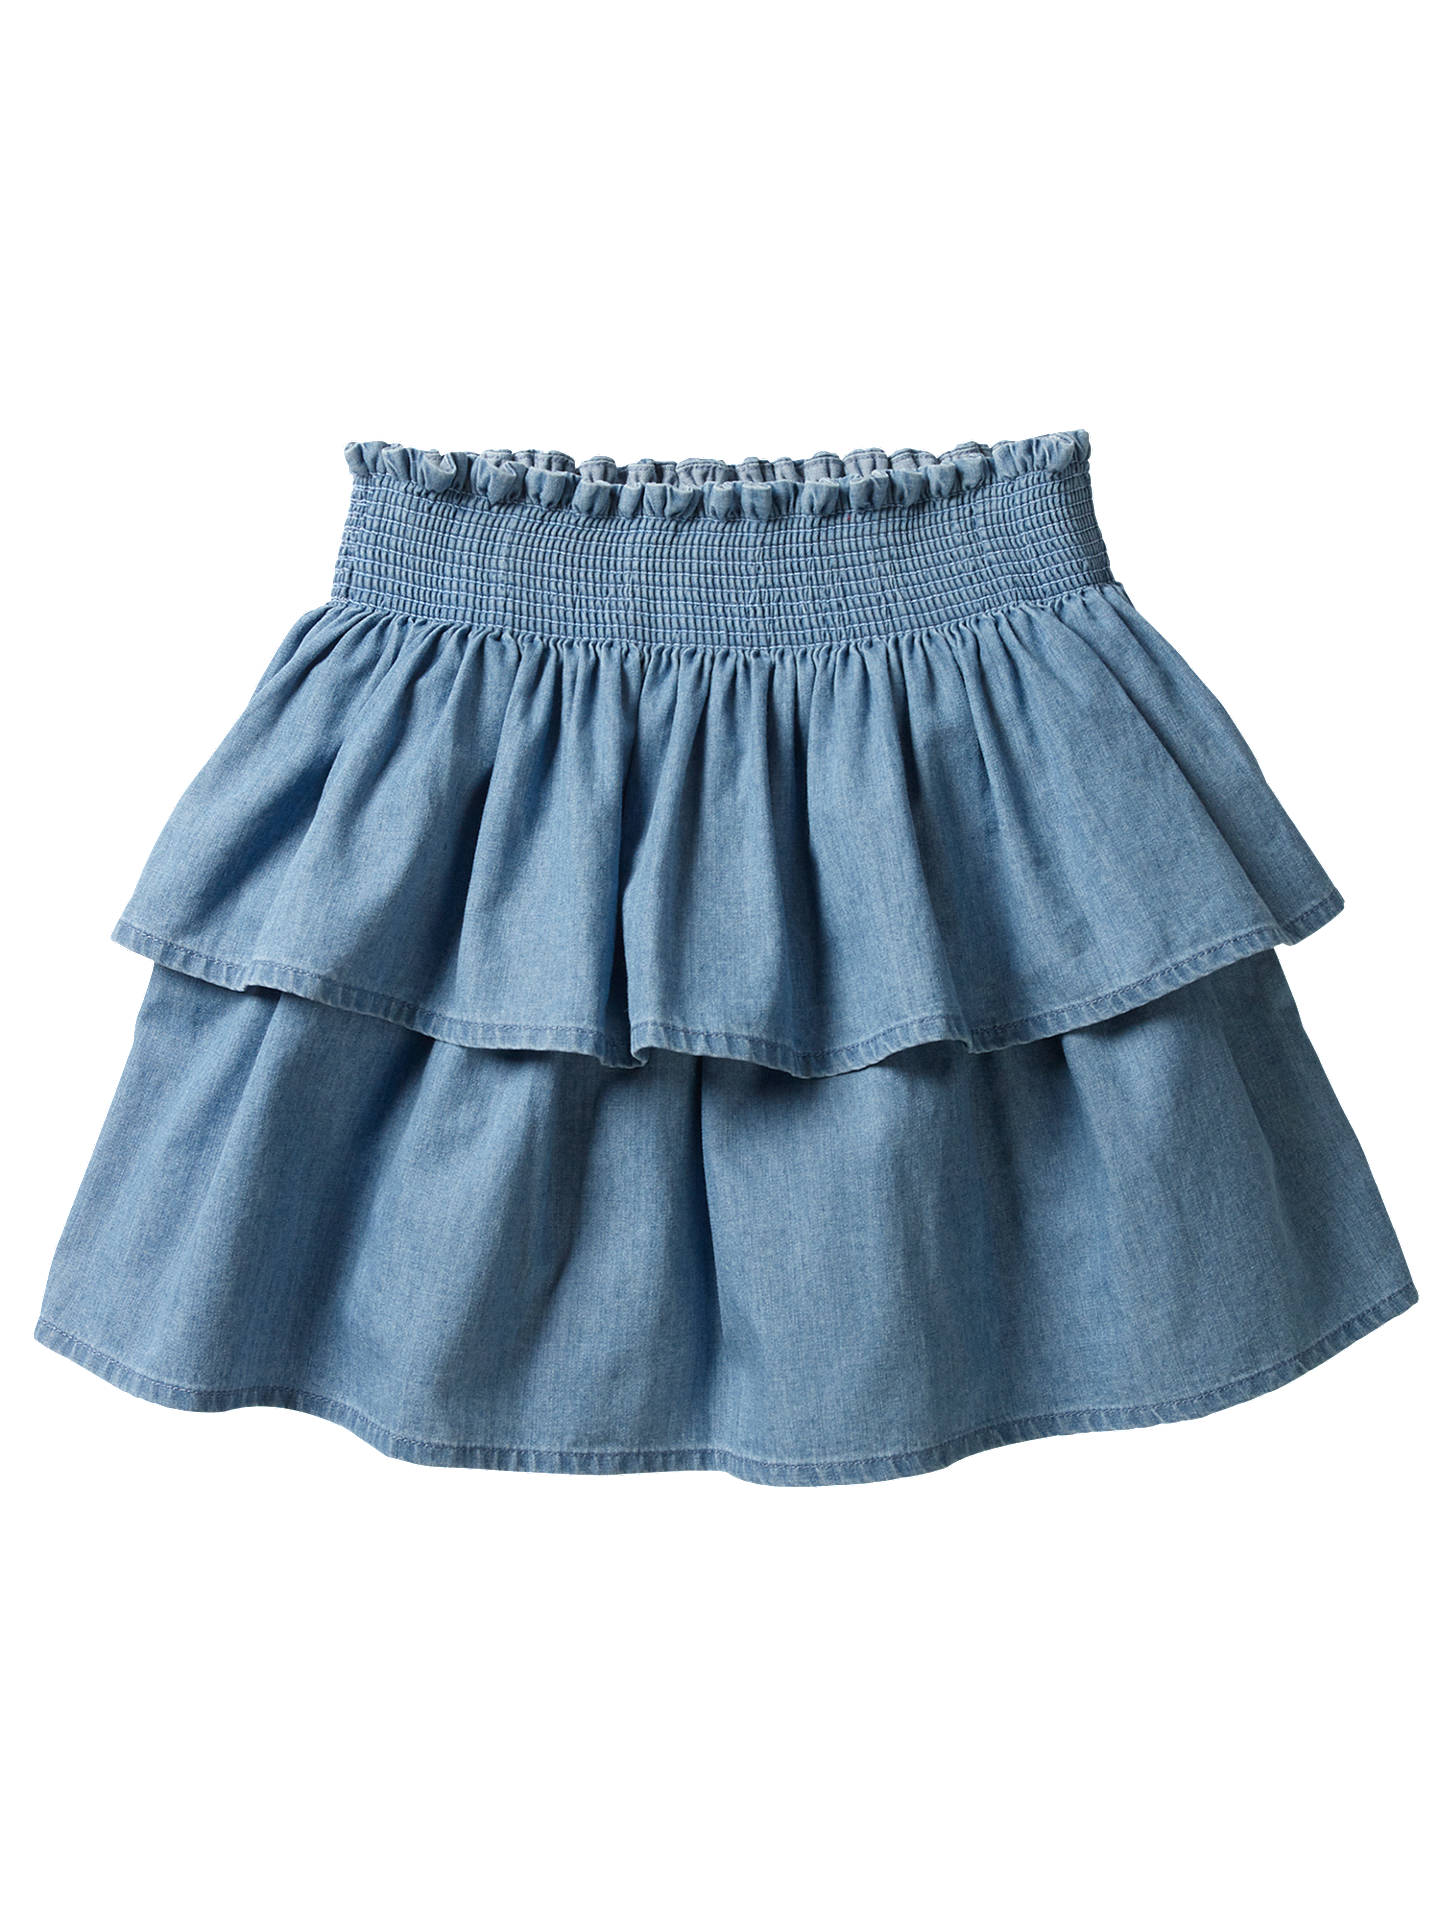 2541b2e1b3f3 Buy Mini Boden Girls' Ruffled Denim Skirt, Blue, 2-3 years Online ...